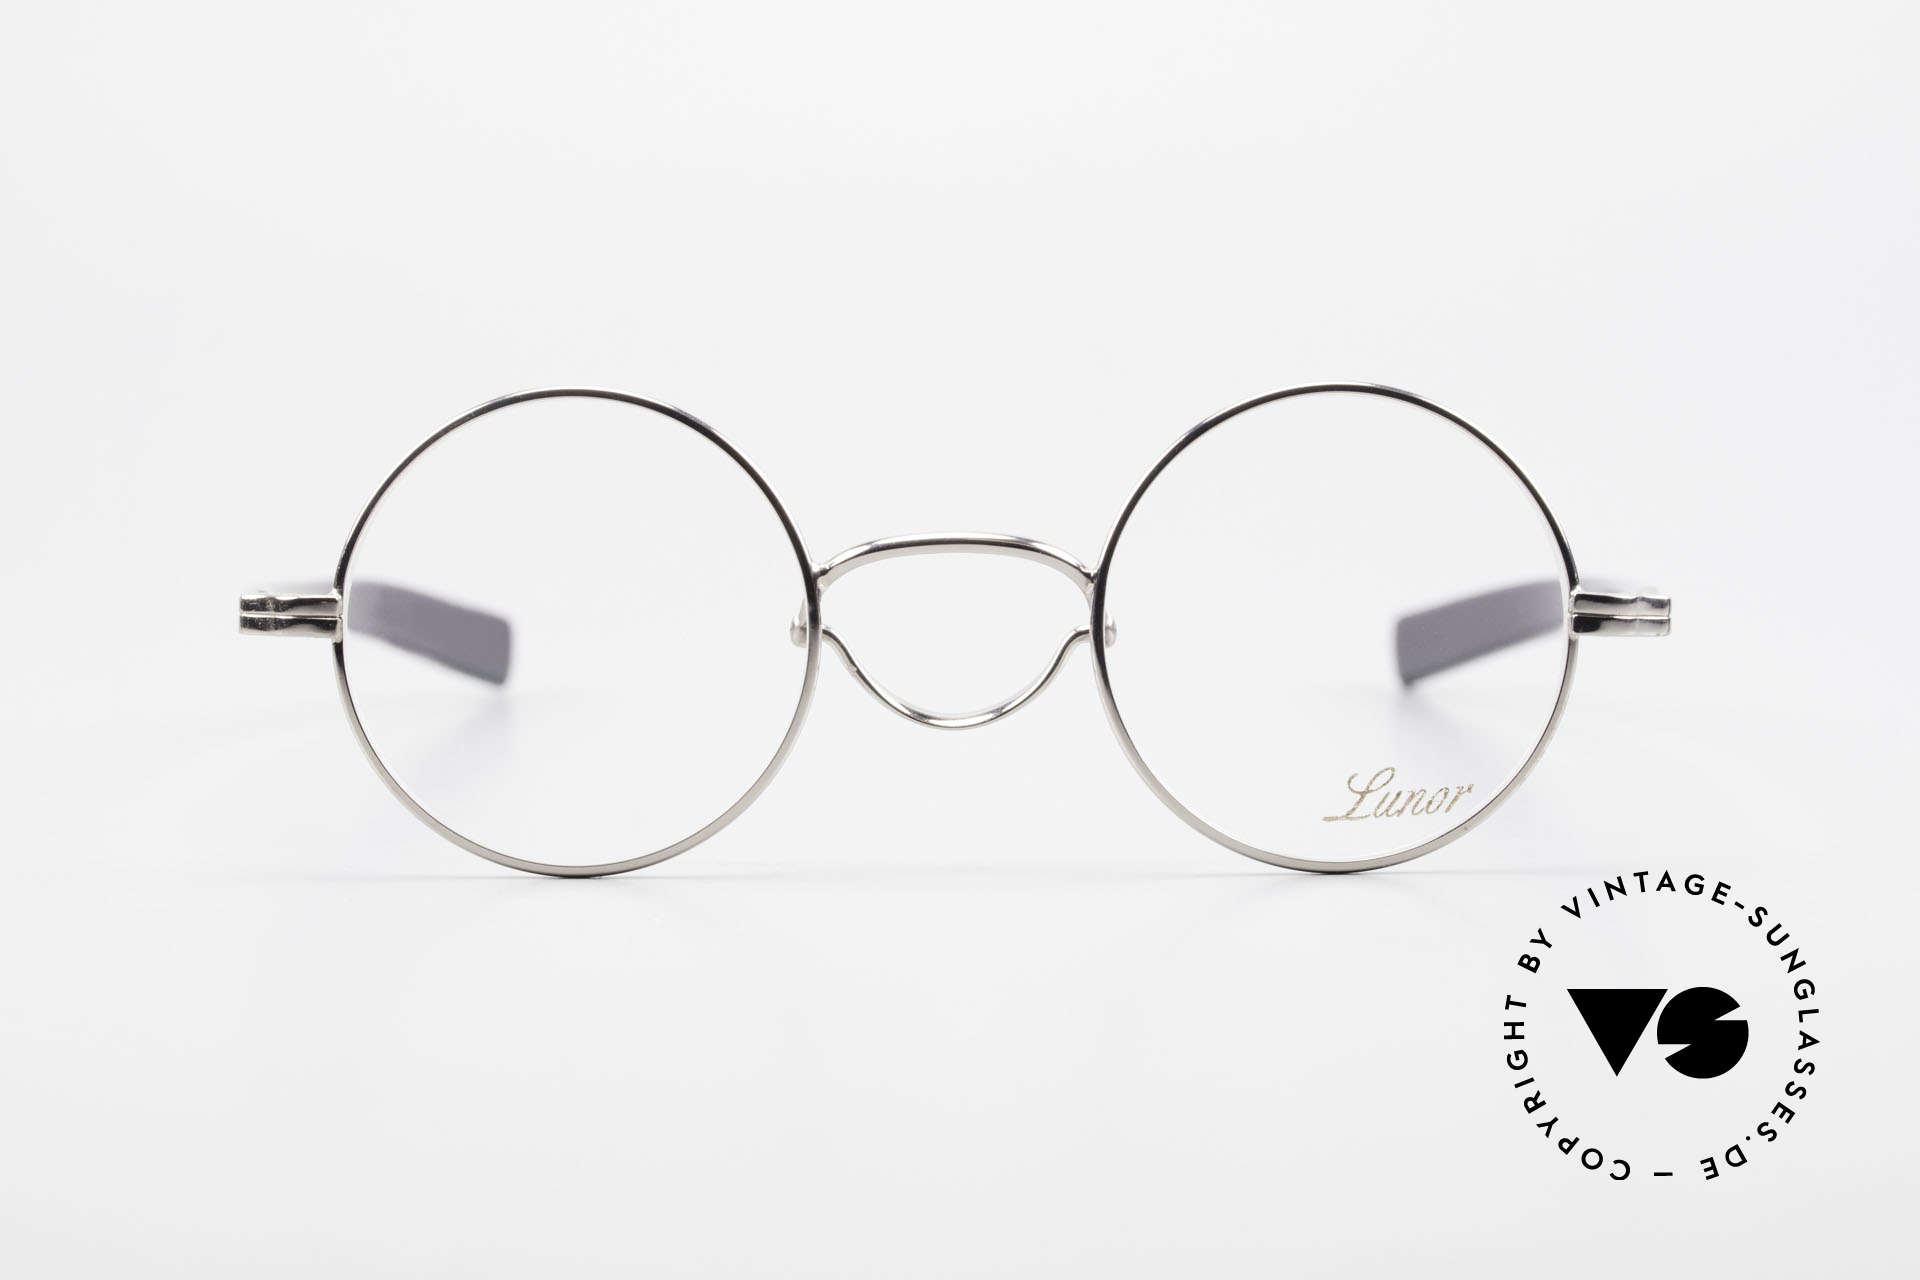 Lunor Swing A 31 Round Swing Bridge Vintage Glasses, traditional German brand; quality handmade in Germany, Made for Men and Women